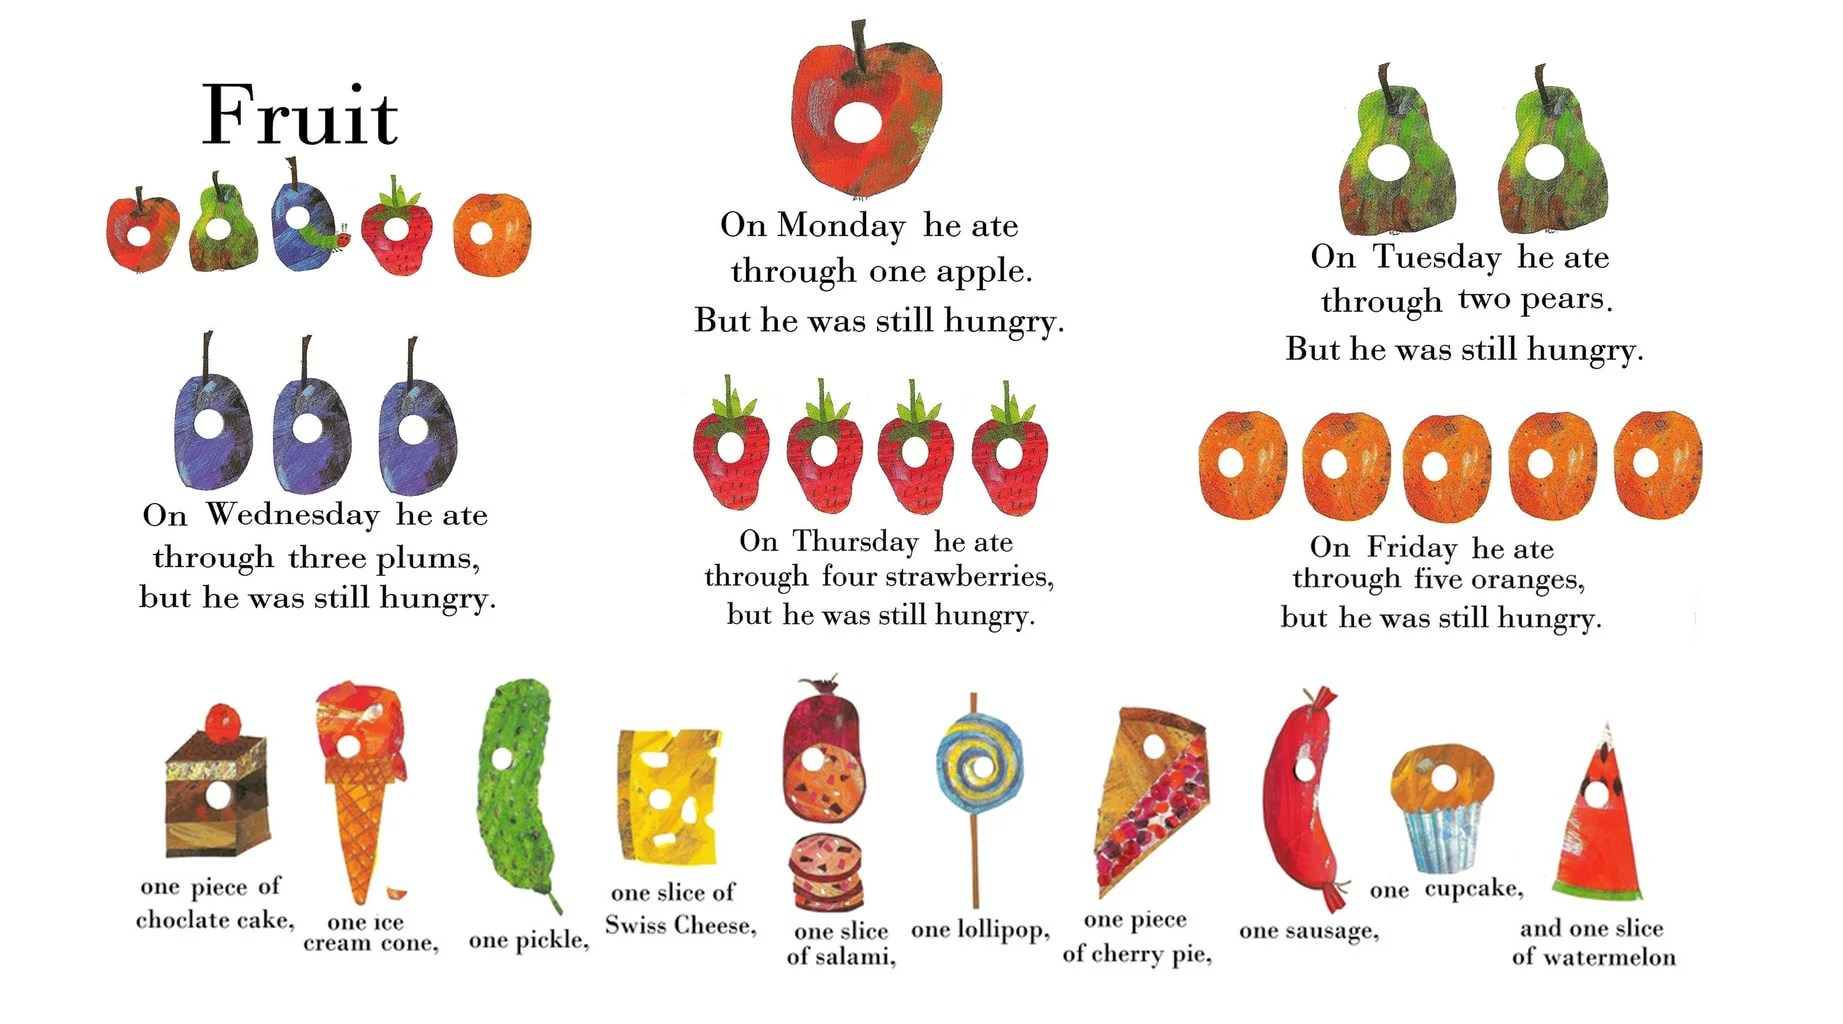 Muffin Tin Snacking for Kids by This Little Home of Mine (Featuring The Very Hungry Caterpillar by Eric Carle)